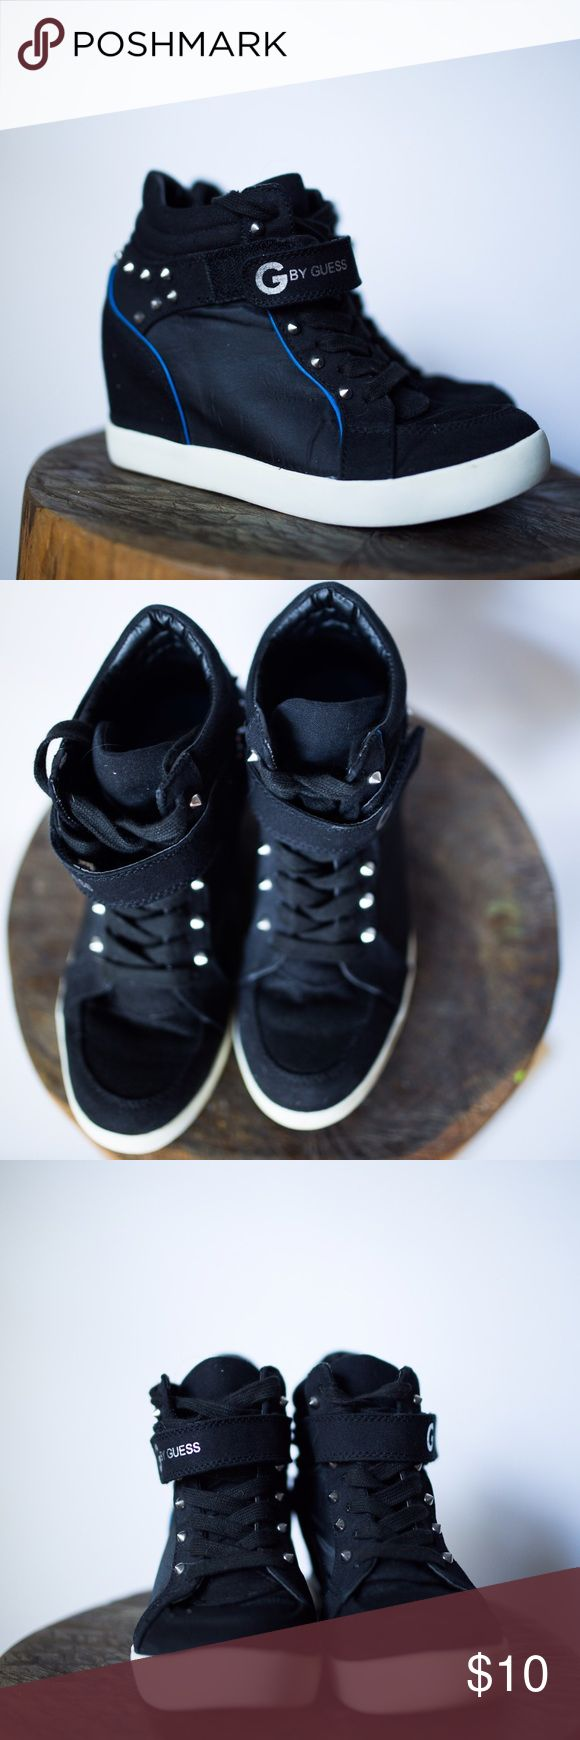 G by Guess black high top sneakers Black high top wedge sneakers with spike detail. G by Guess Shoes Combat & Moto Boots